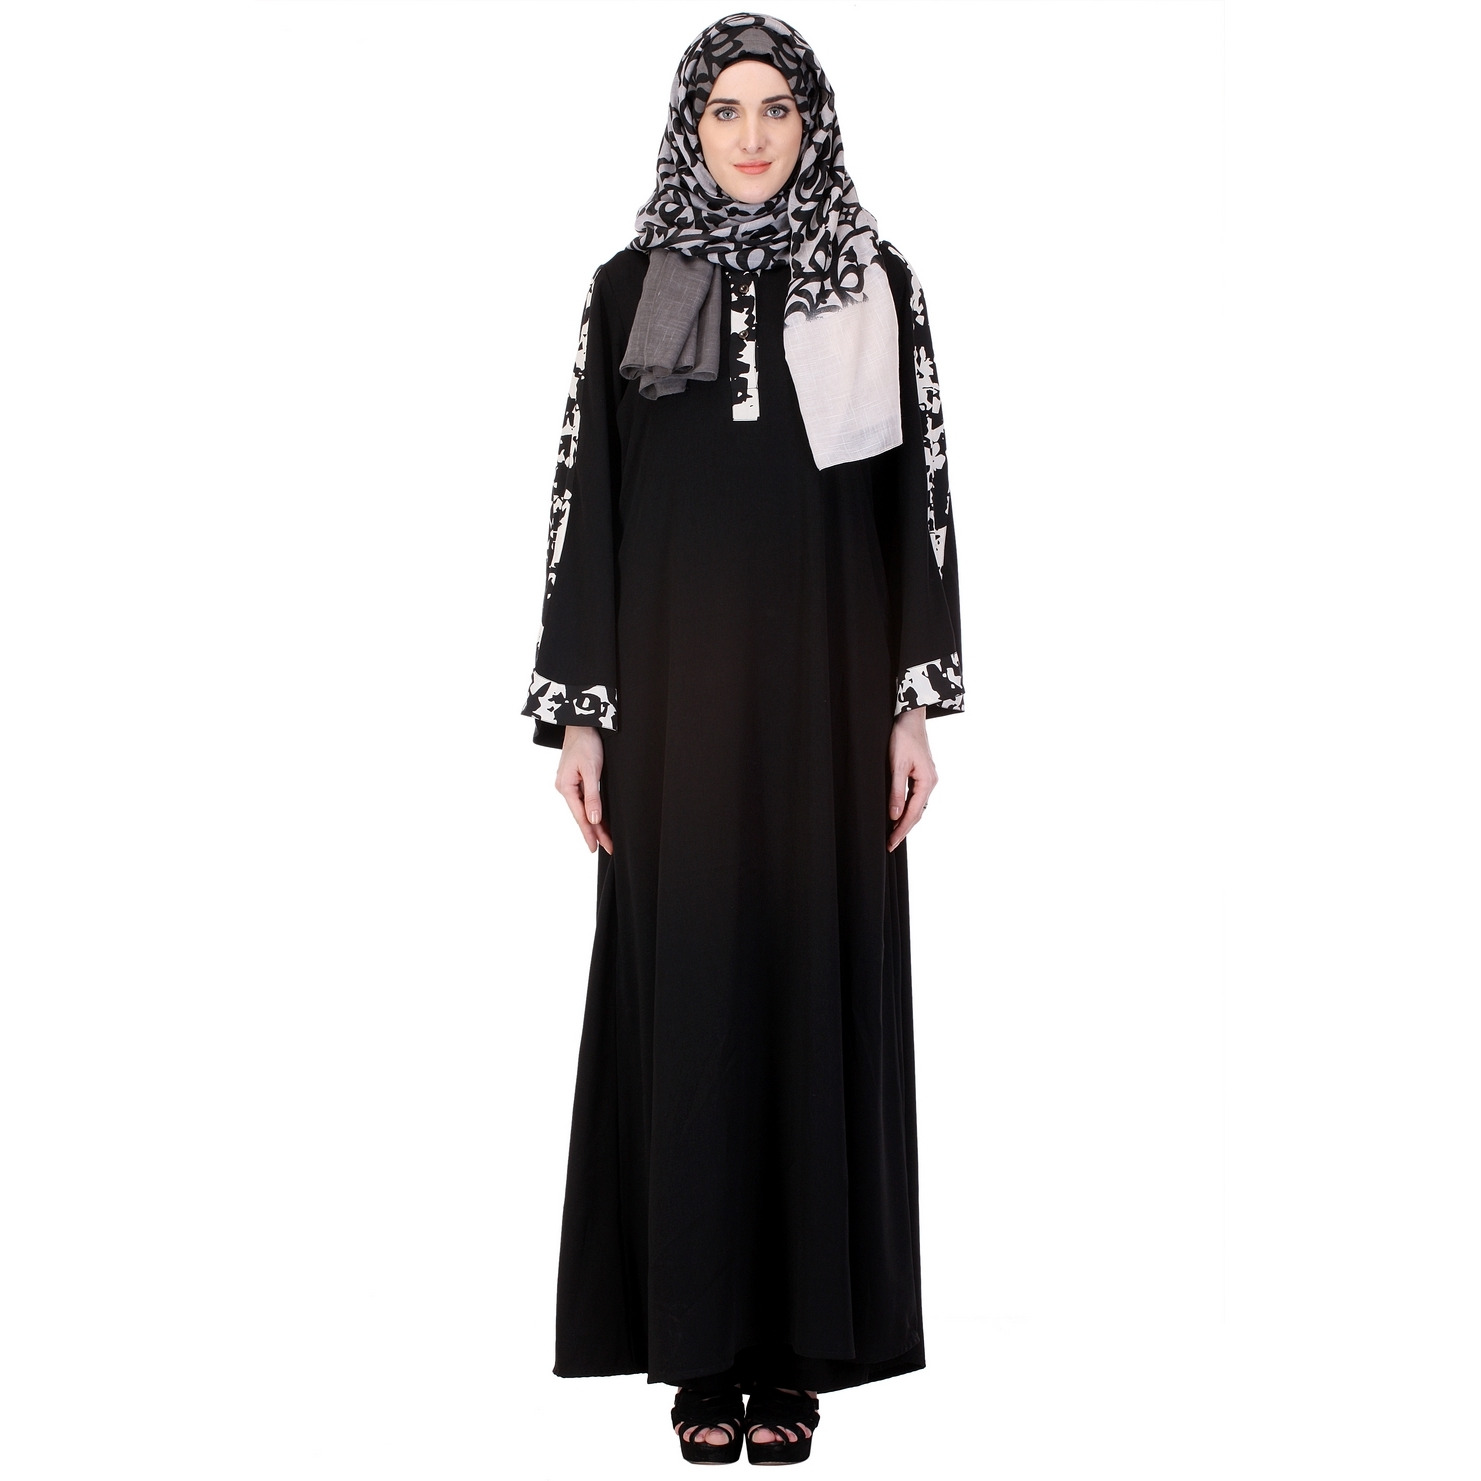 Modest Forever Basic Black Abaya with Printed White Trims (Size: M)